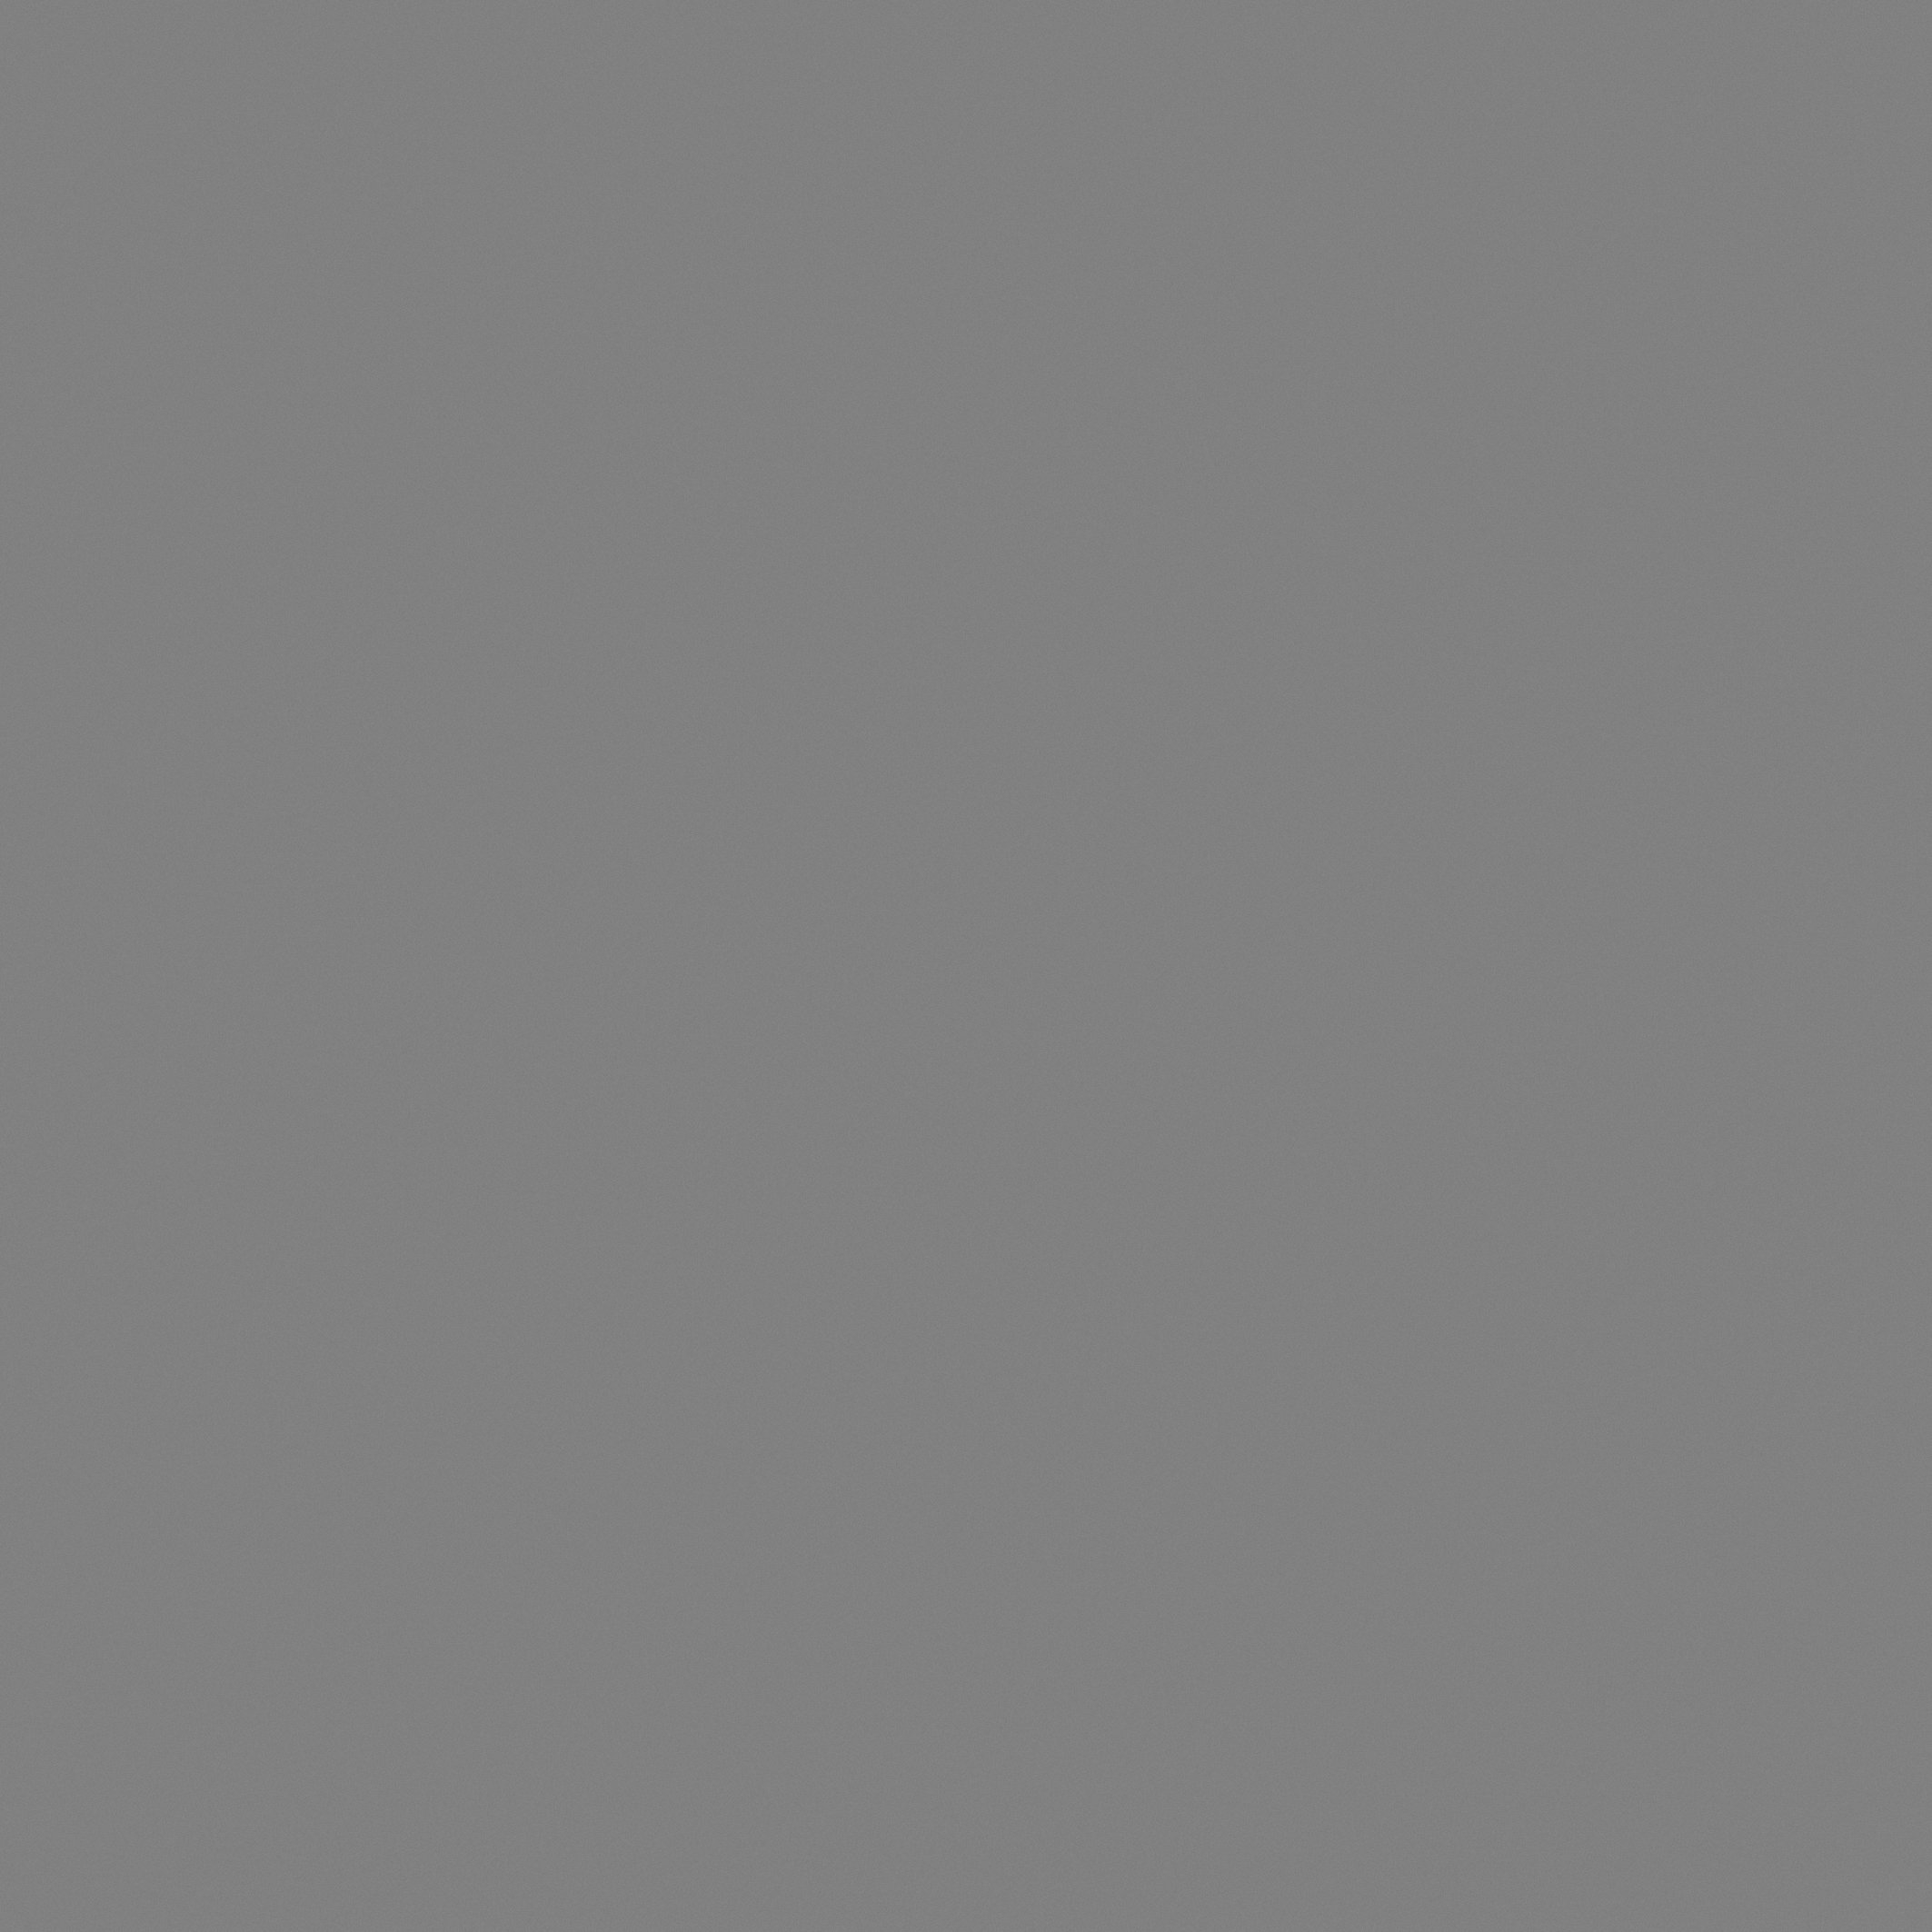 Forbo Мармолеум Forbo 186 lead